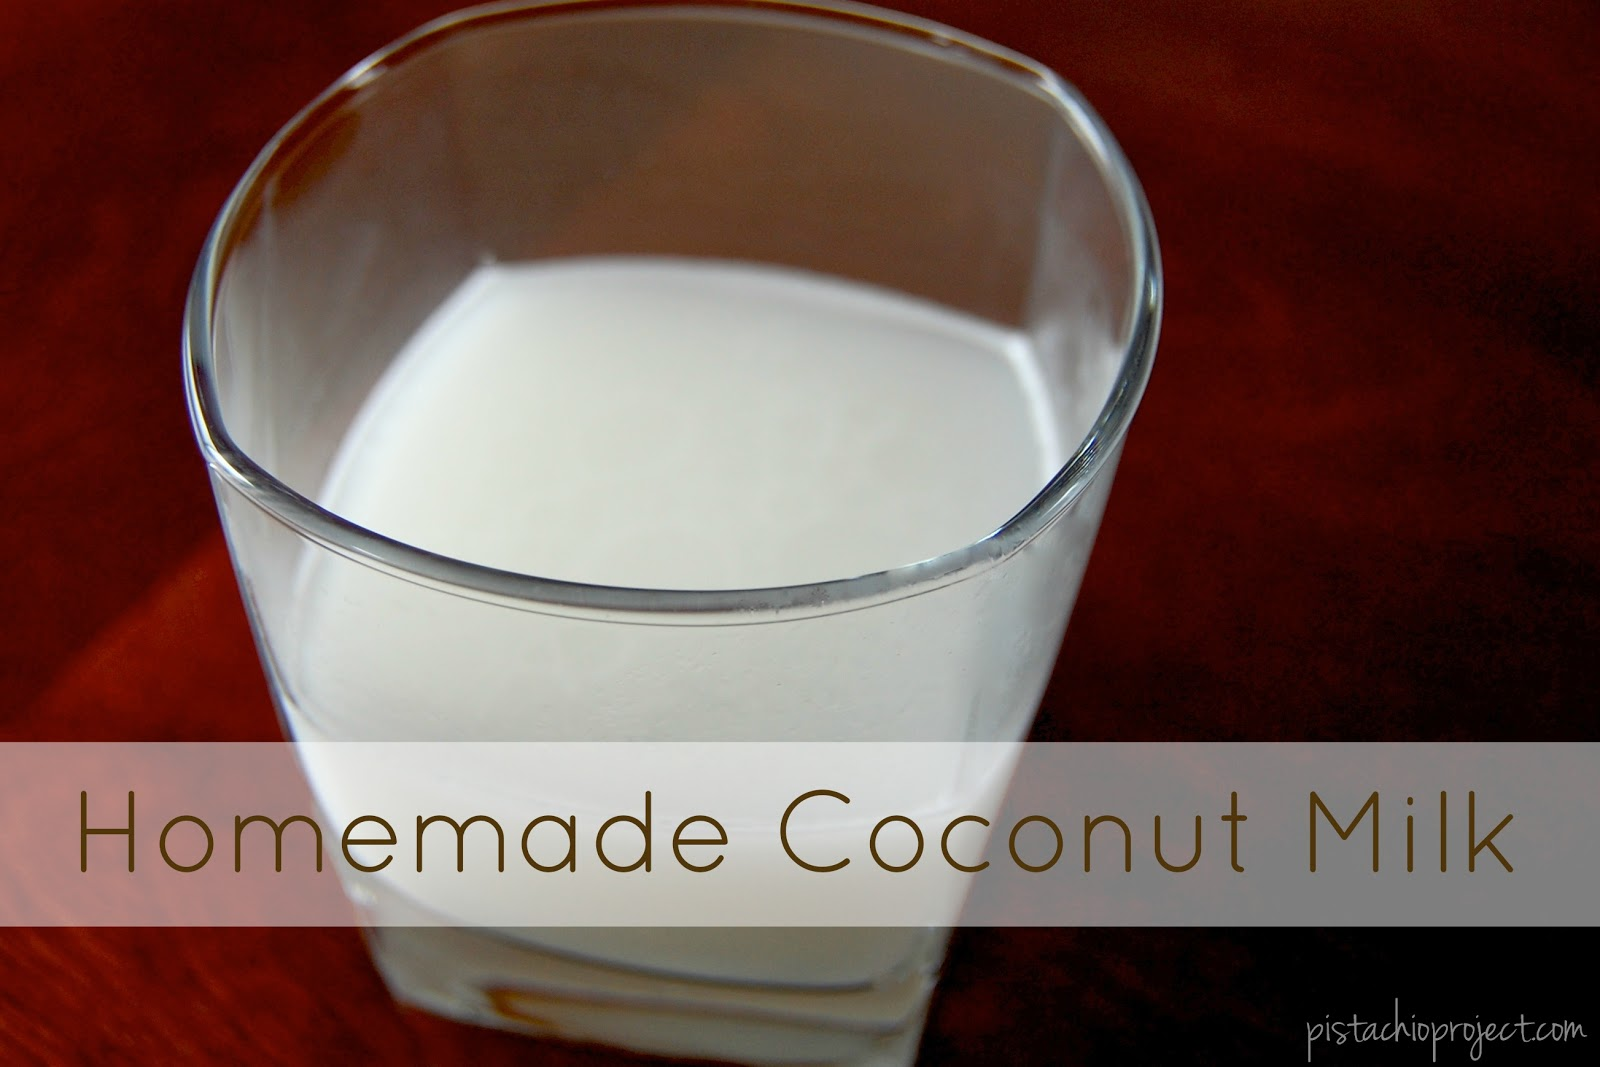 Homemade Coconut Milk - The Pistachio Project